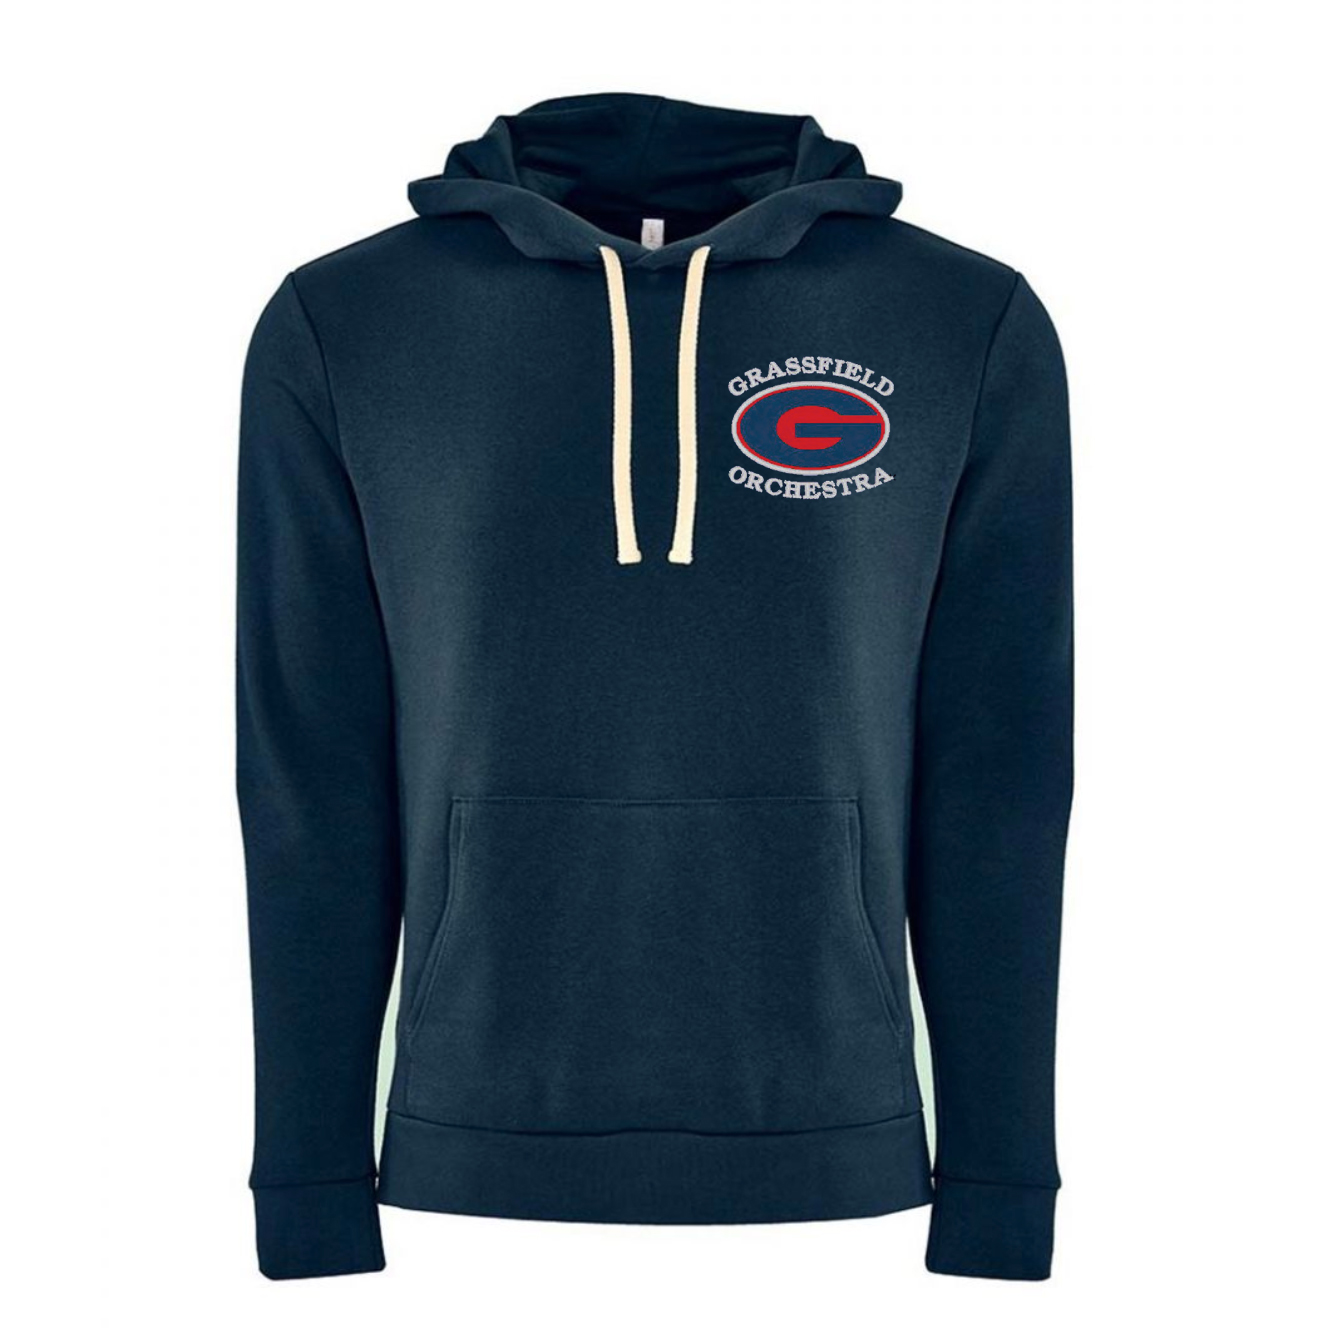 Grassfield Orchestra Polo ShirtHooded Pullover